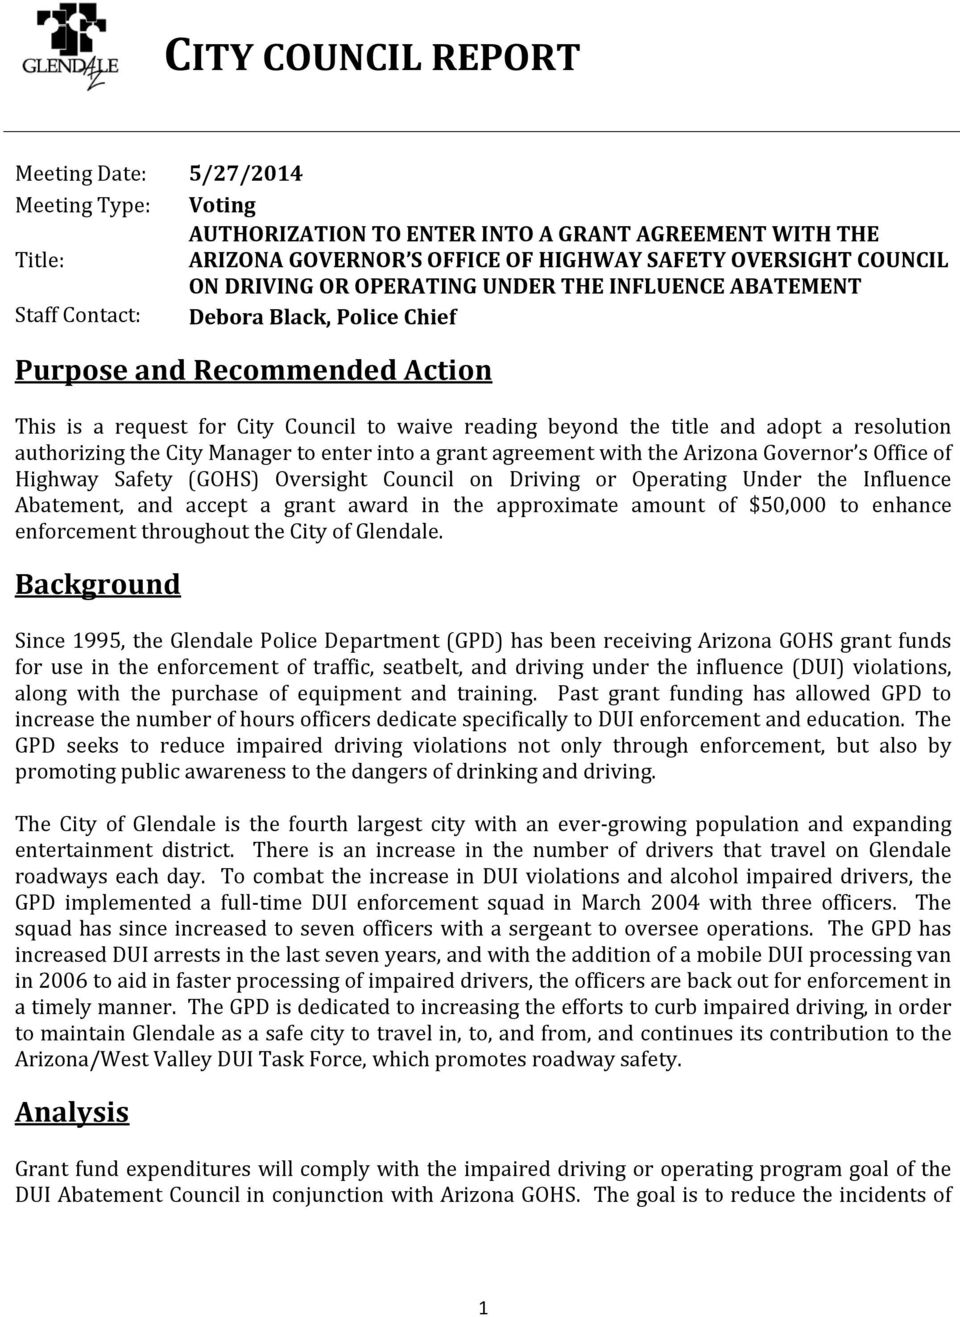 resolution authorizing the City Manager to enter into a grant agreement with the Arizona Governor s Office of Highway Safety (GOHS) Oversight Council on Driving or Operating Under the Influence